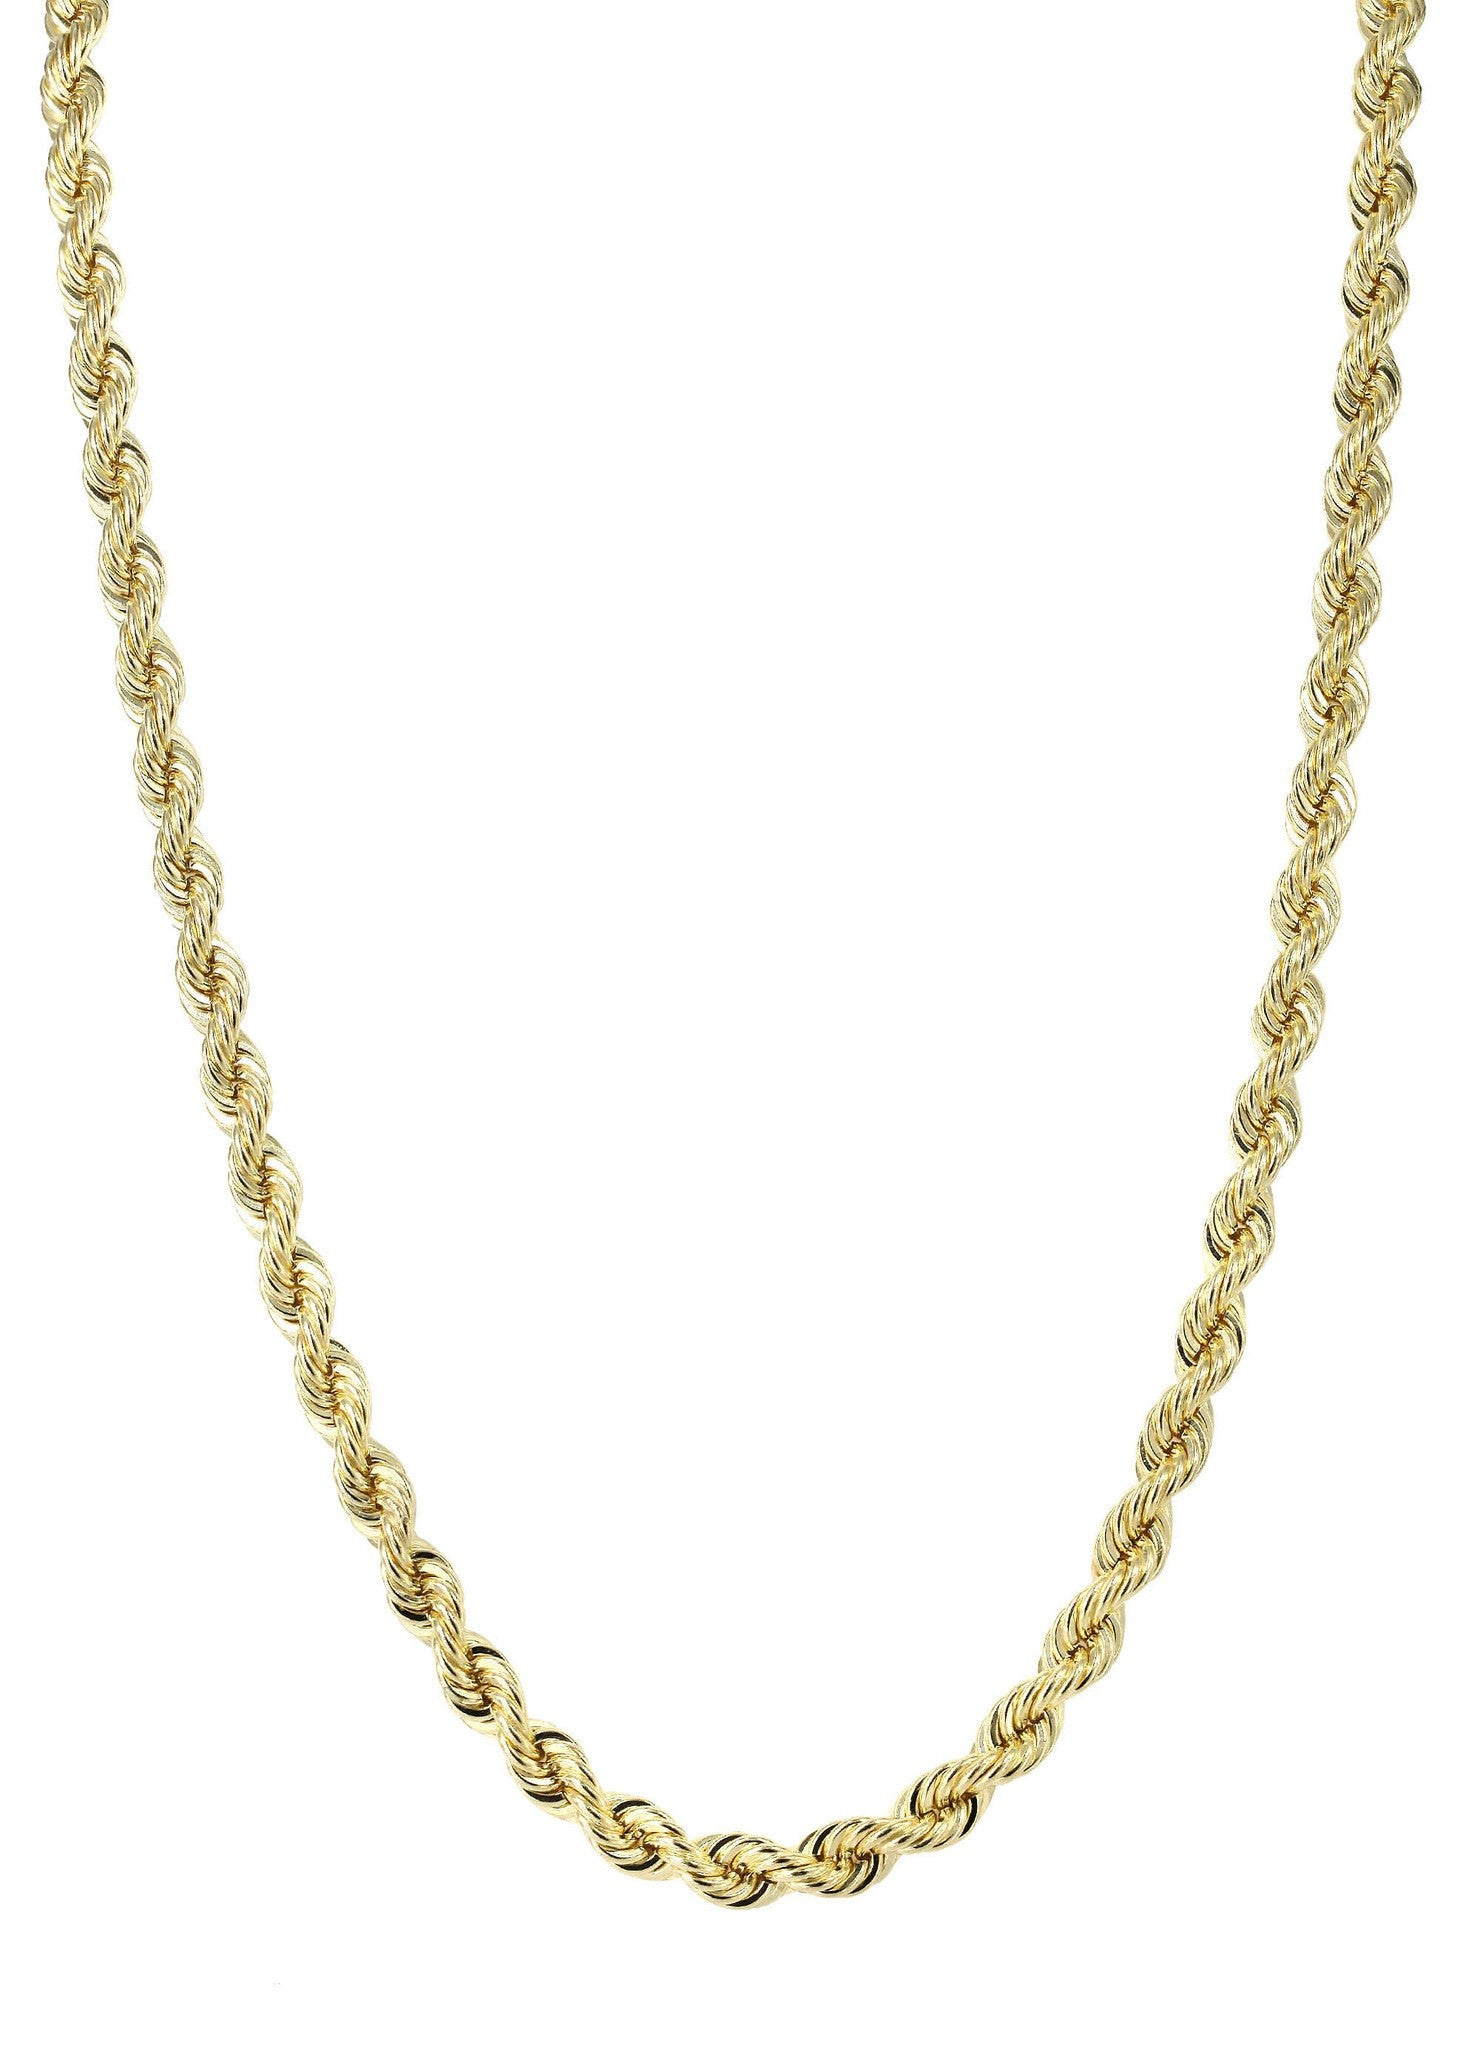 cb1da23c1 Gold Chain - Mens Solid Rope Chain 10K Gold – FrostNYC